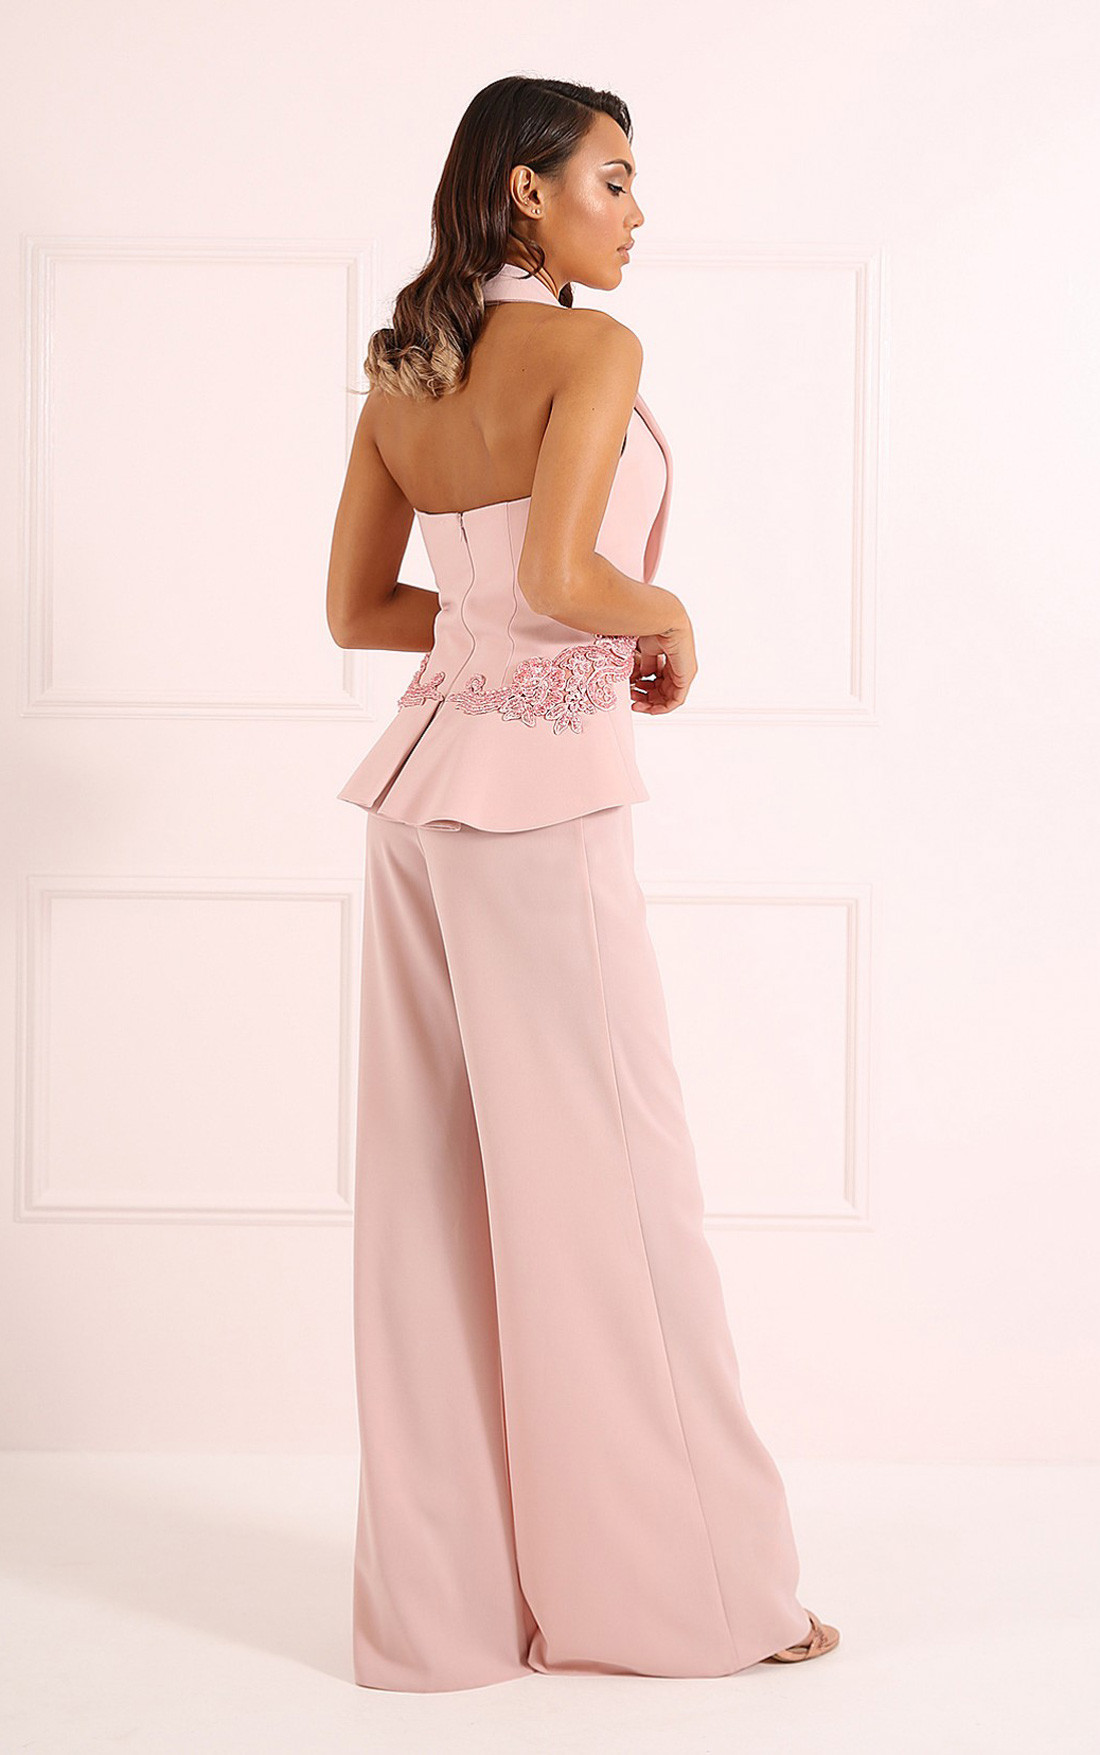 8e11eb15766 ... Forever Unique - Andie Nude Tuxedo Style Jumpsuit (CH8802) ...